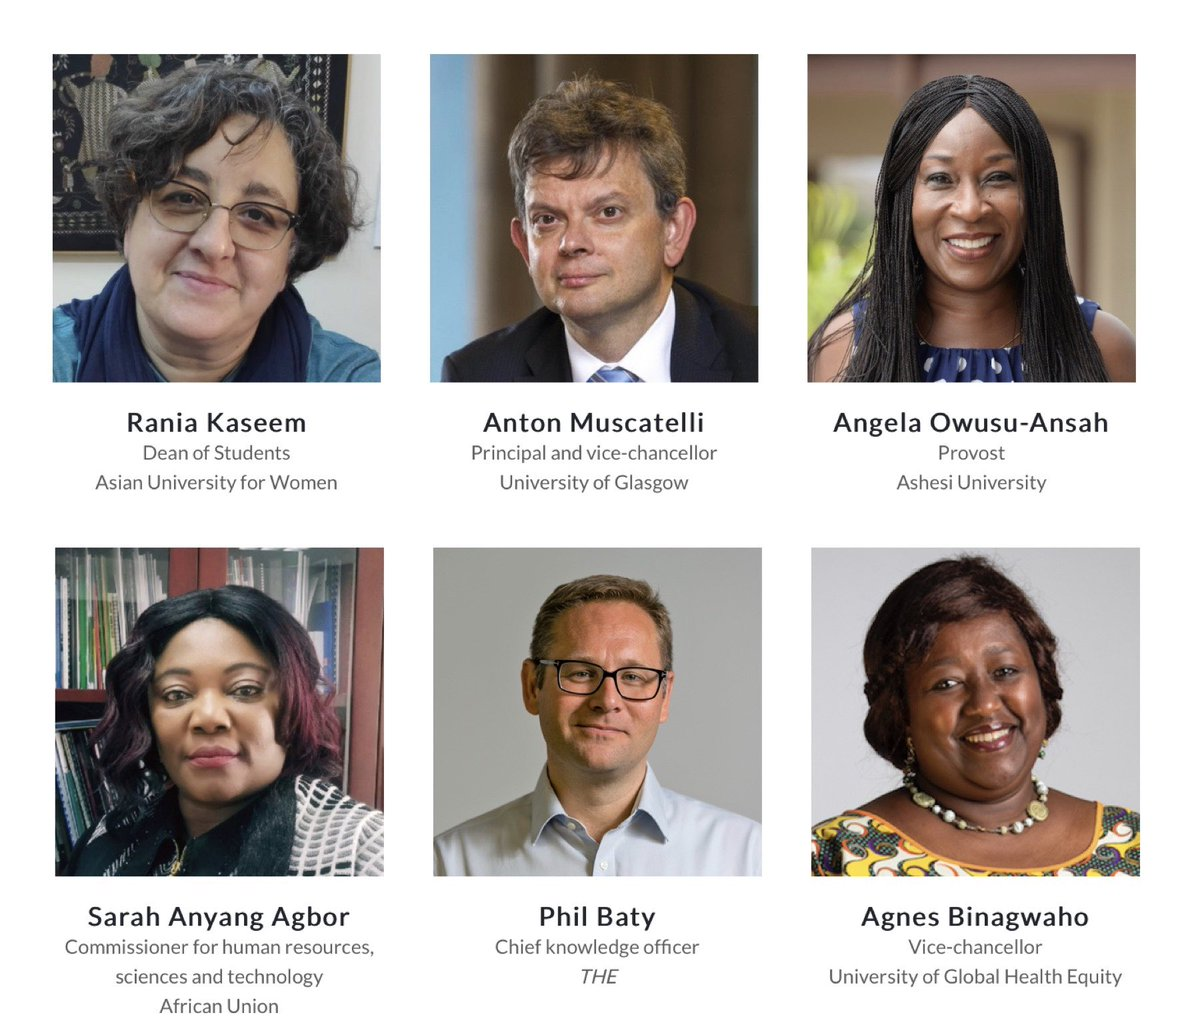 More brilliant speakers confirmed for #THEWAS 2020. Join us to explore a #newdawnHE on 1-2 Sept. https://t.co/rBSA2xrWql https://t.co/s0svuKVM5F